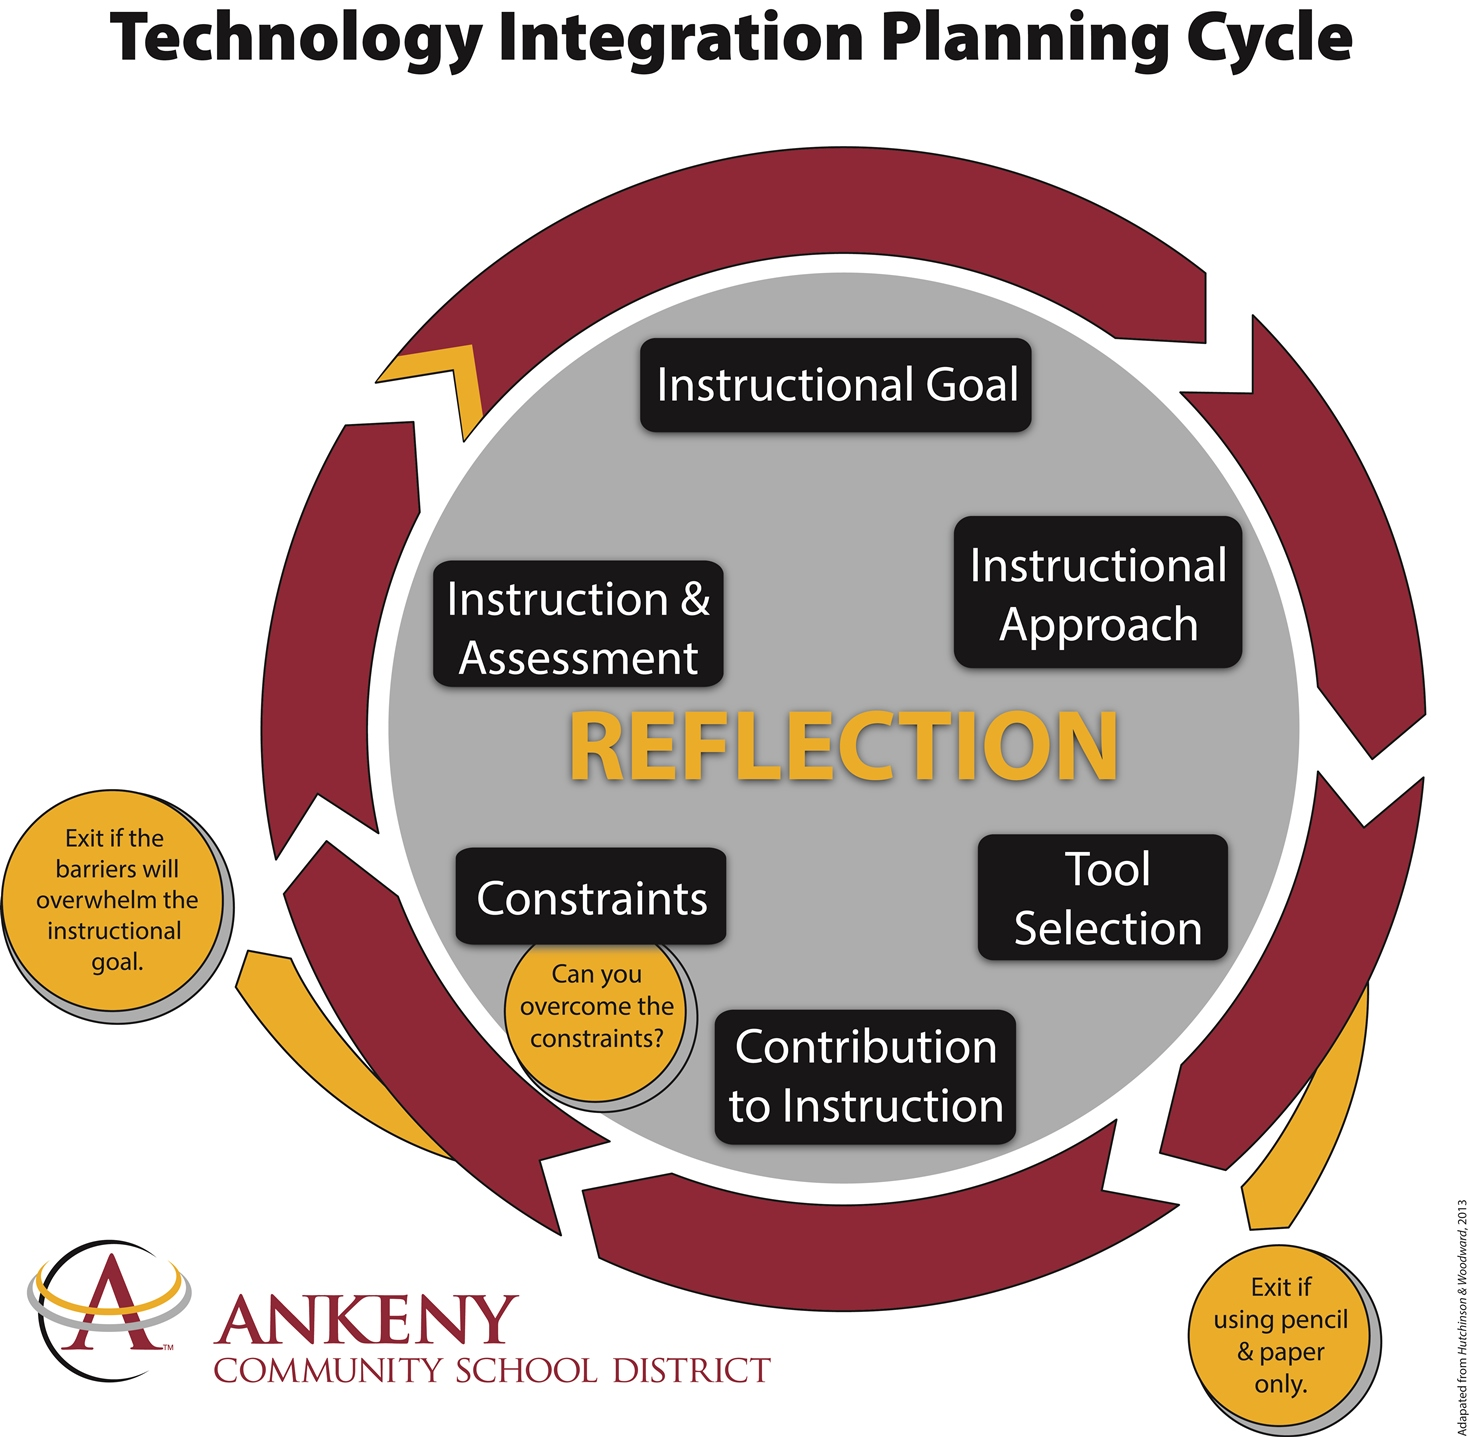 The Technology Integration Planning Cycle